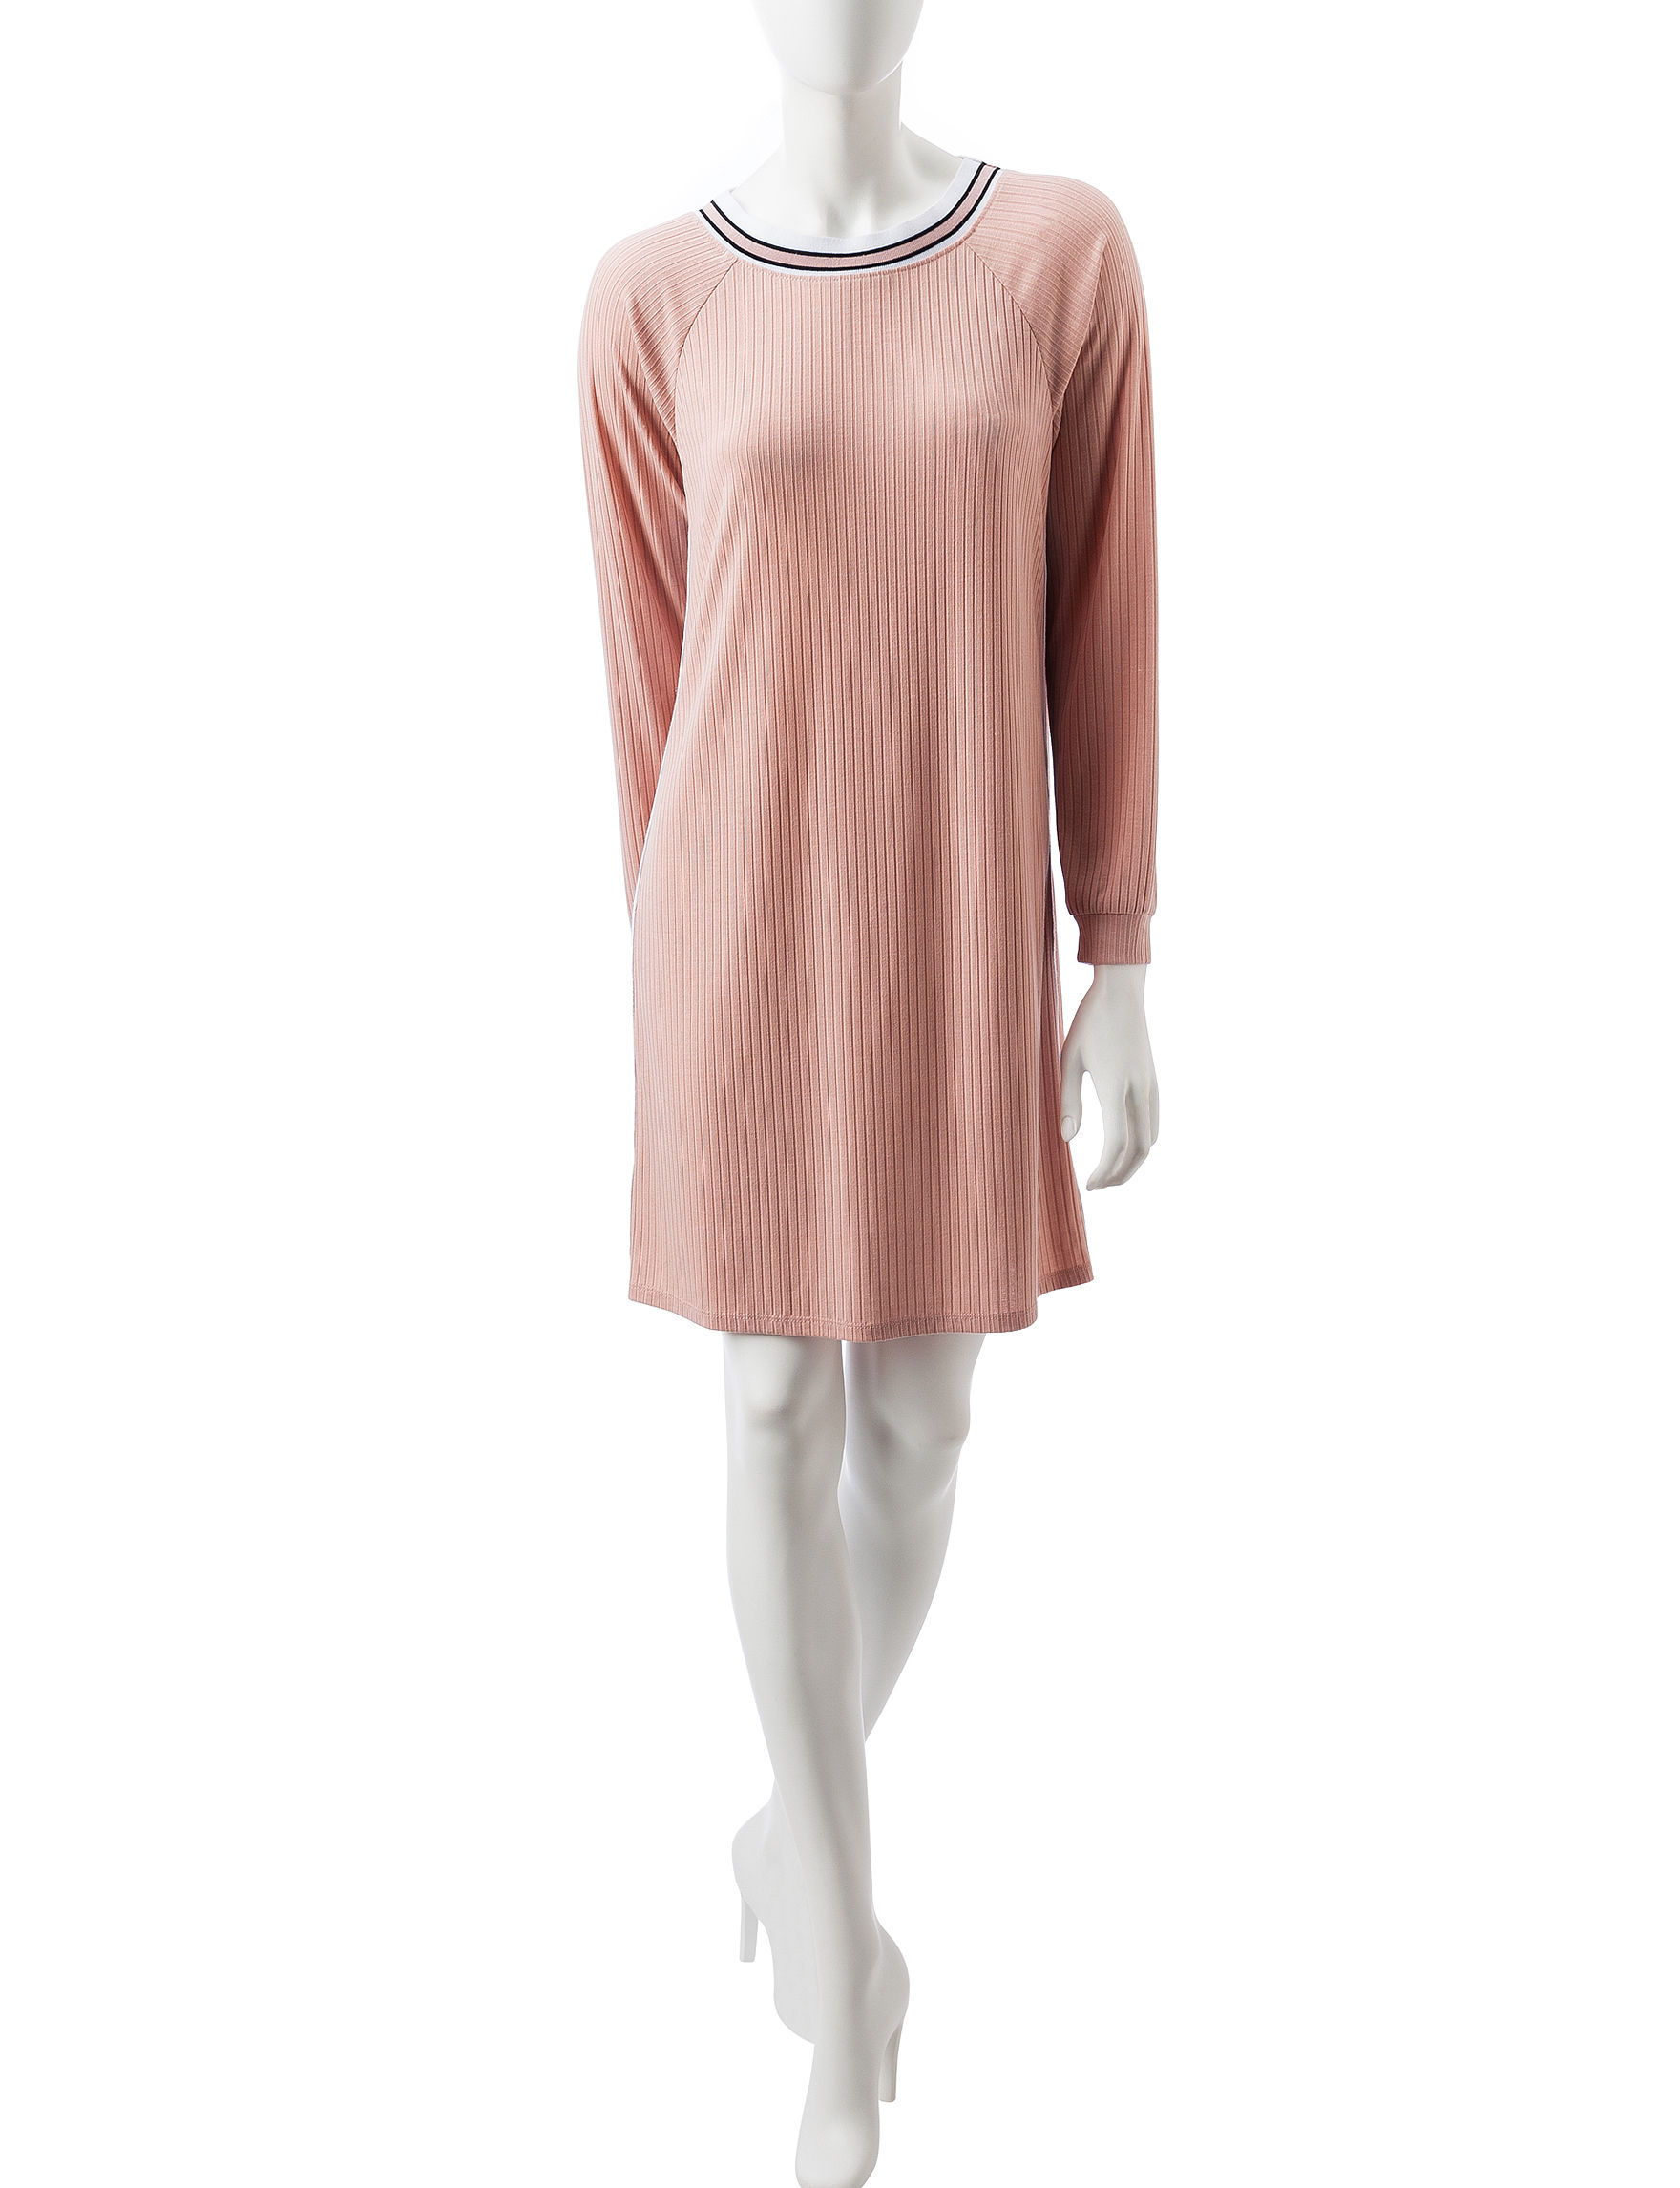 Ronni Nicole Blush Everyday & Casual Shift Dresses